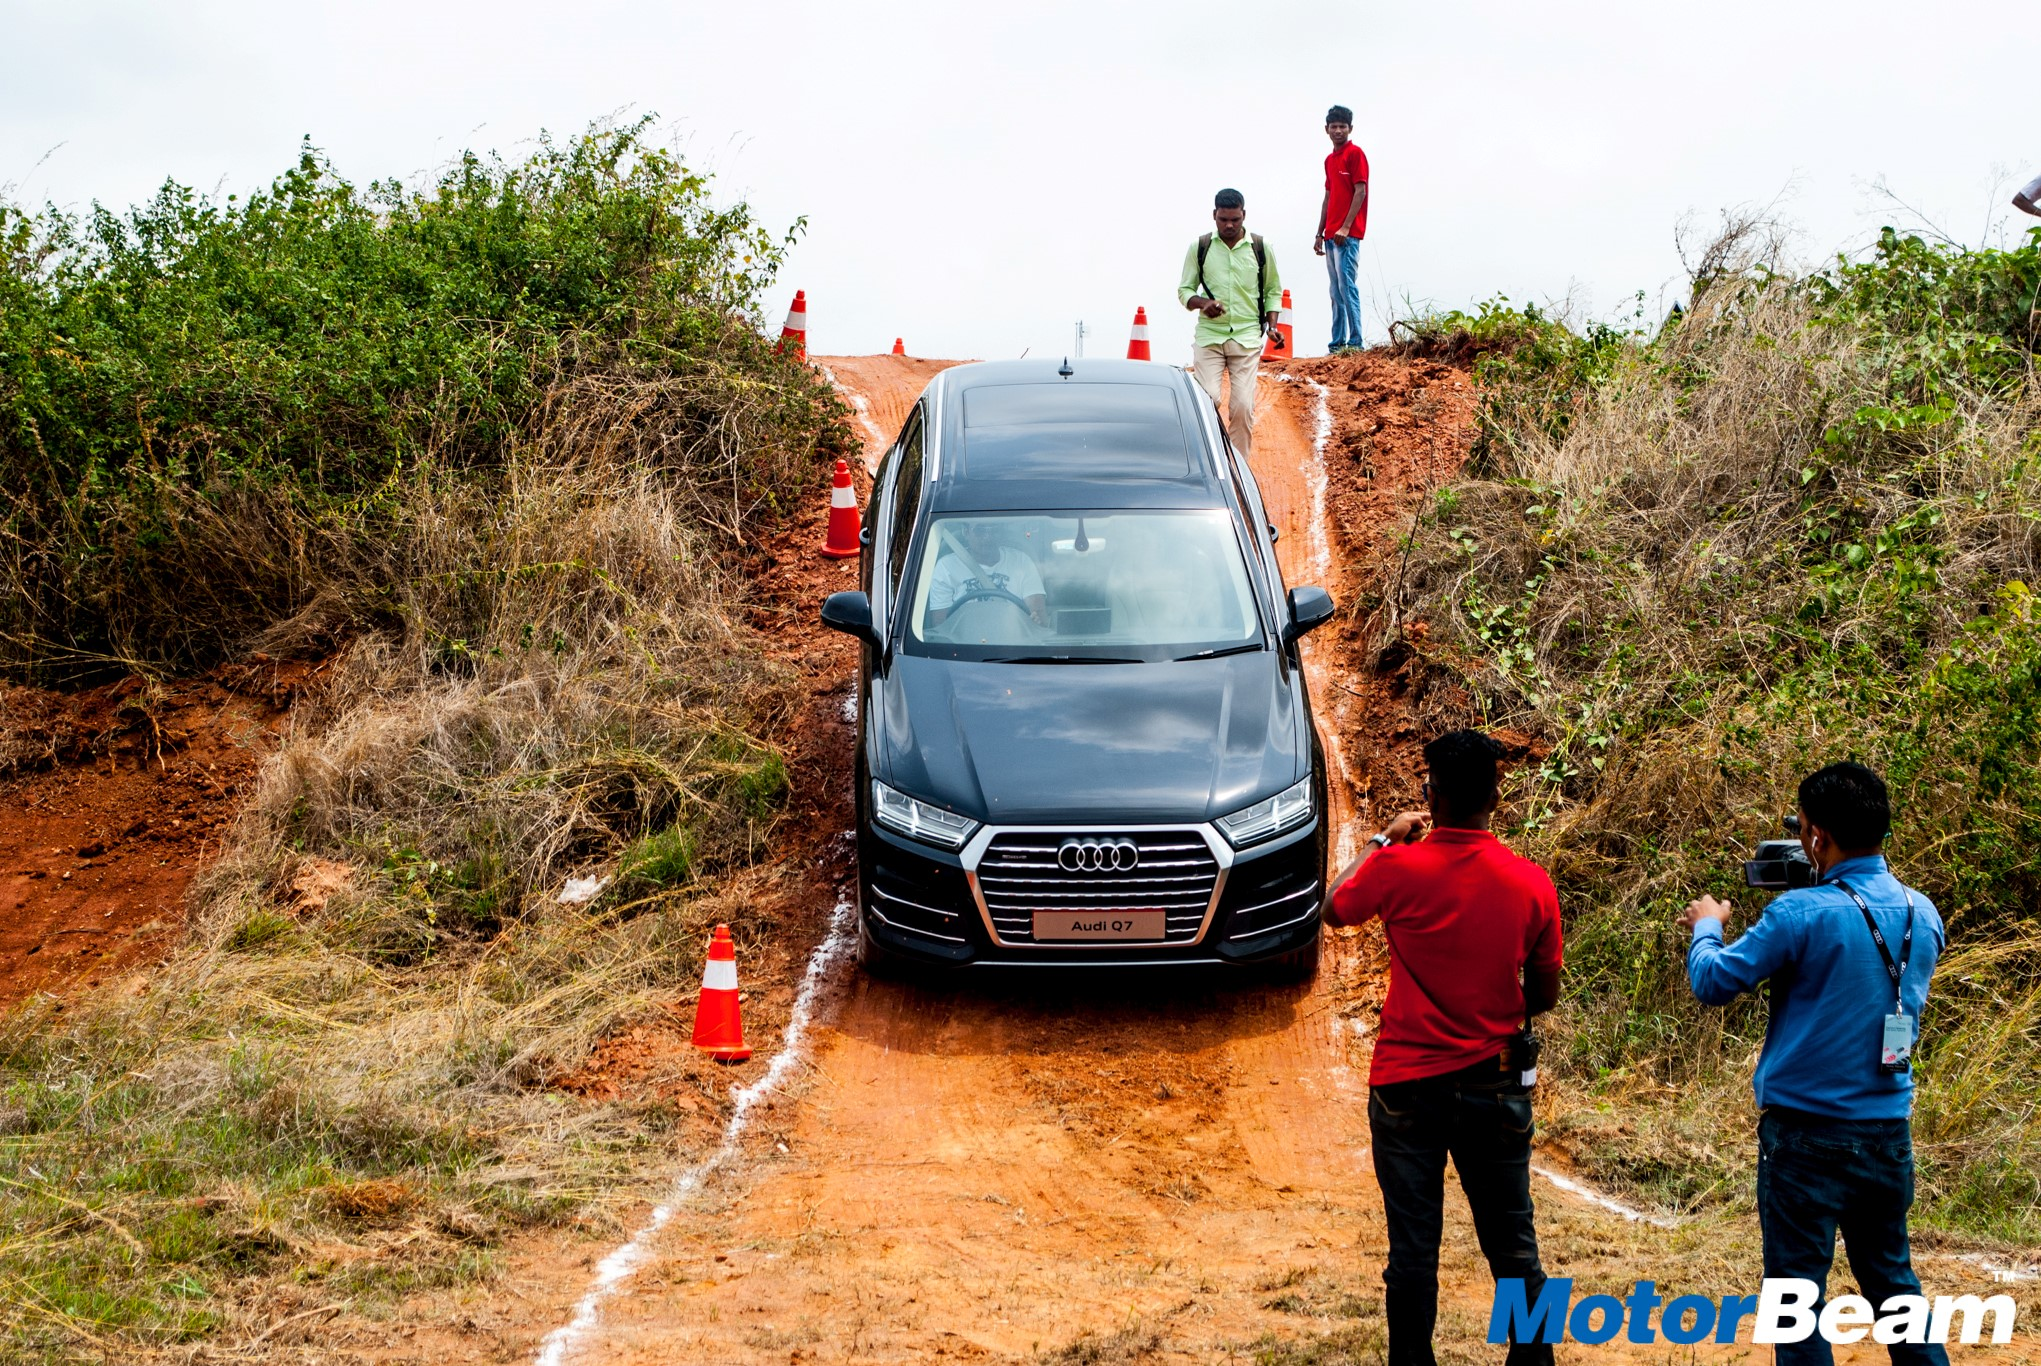 2016 Audi Q7 Offroad Experience